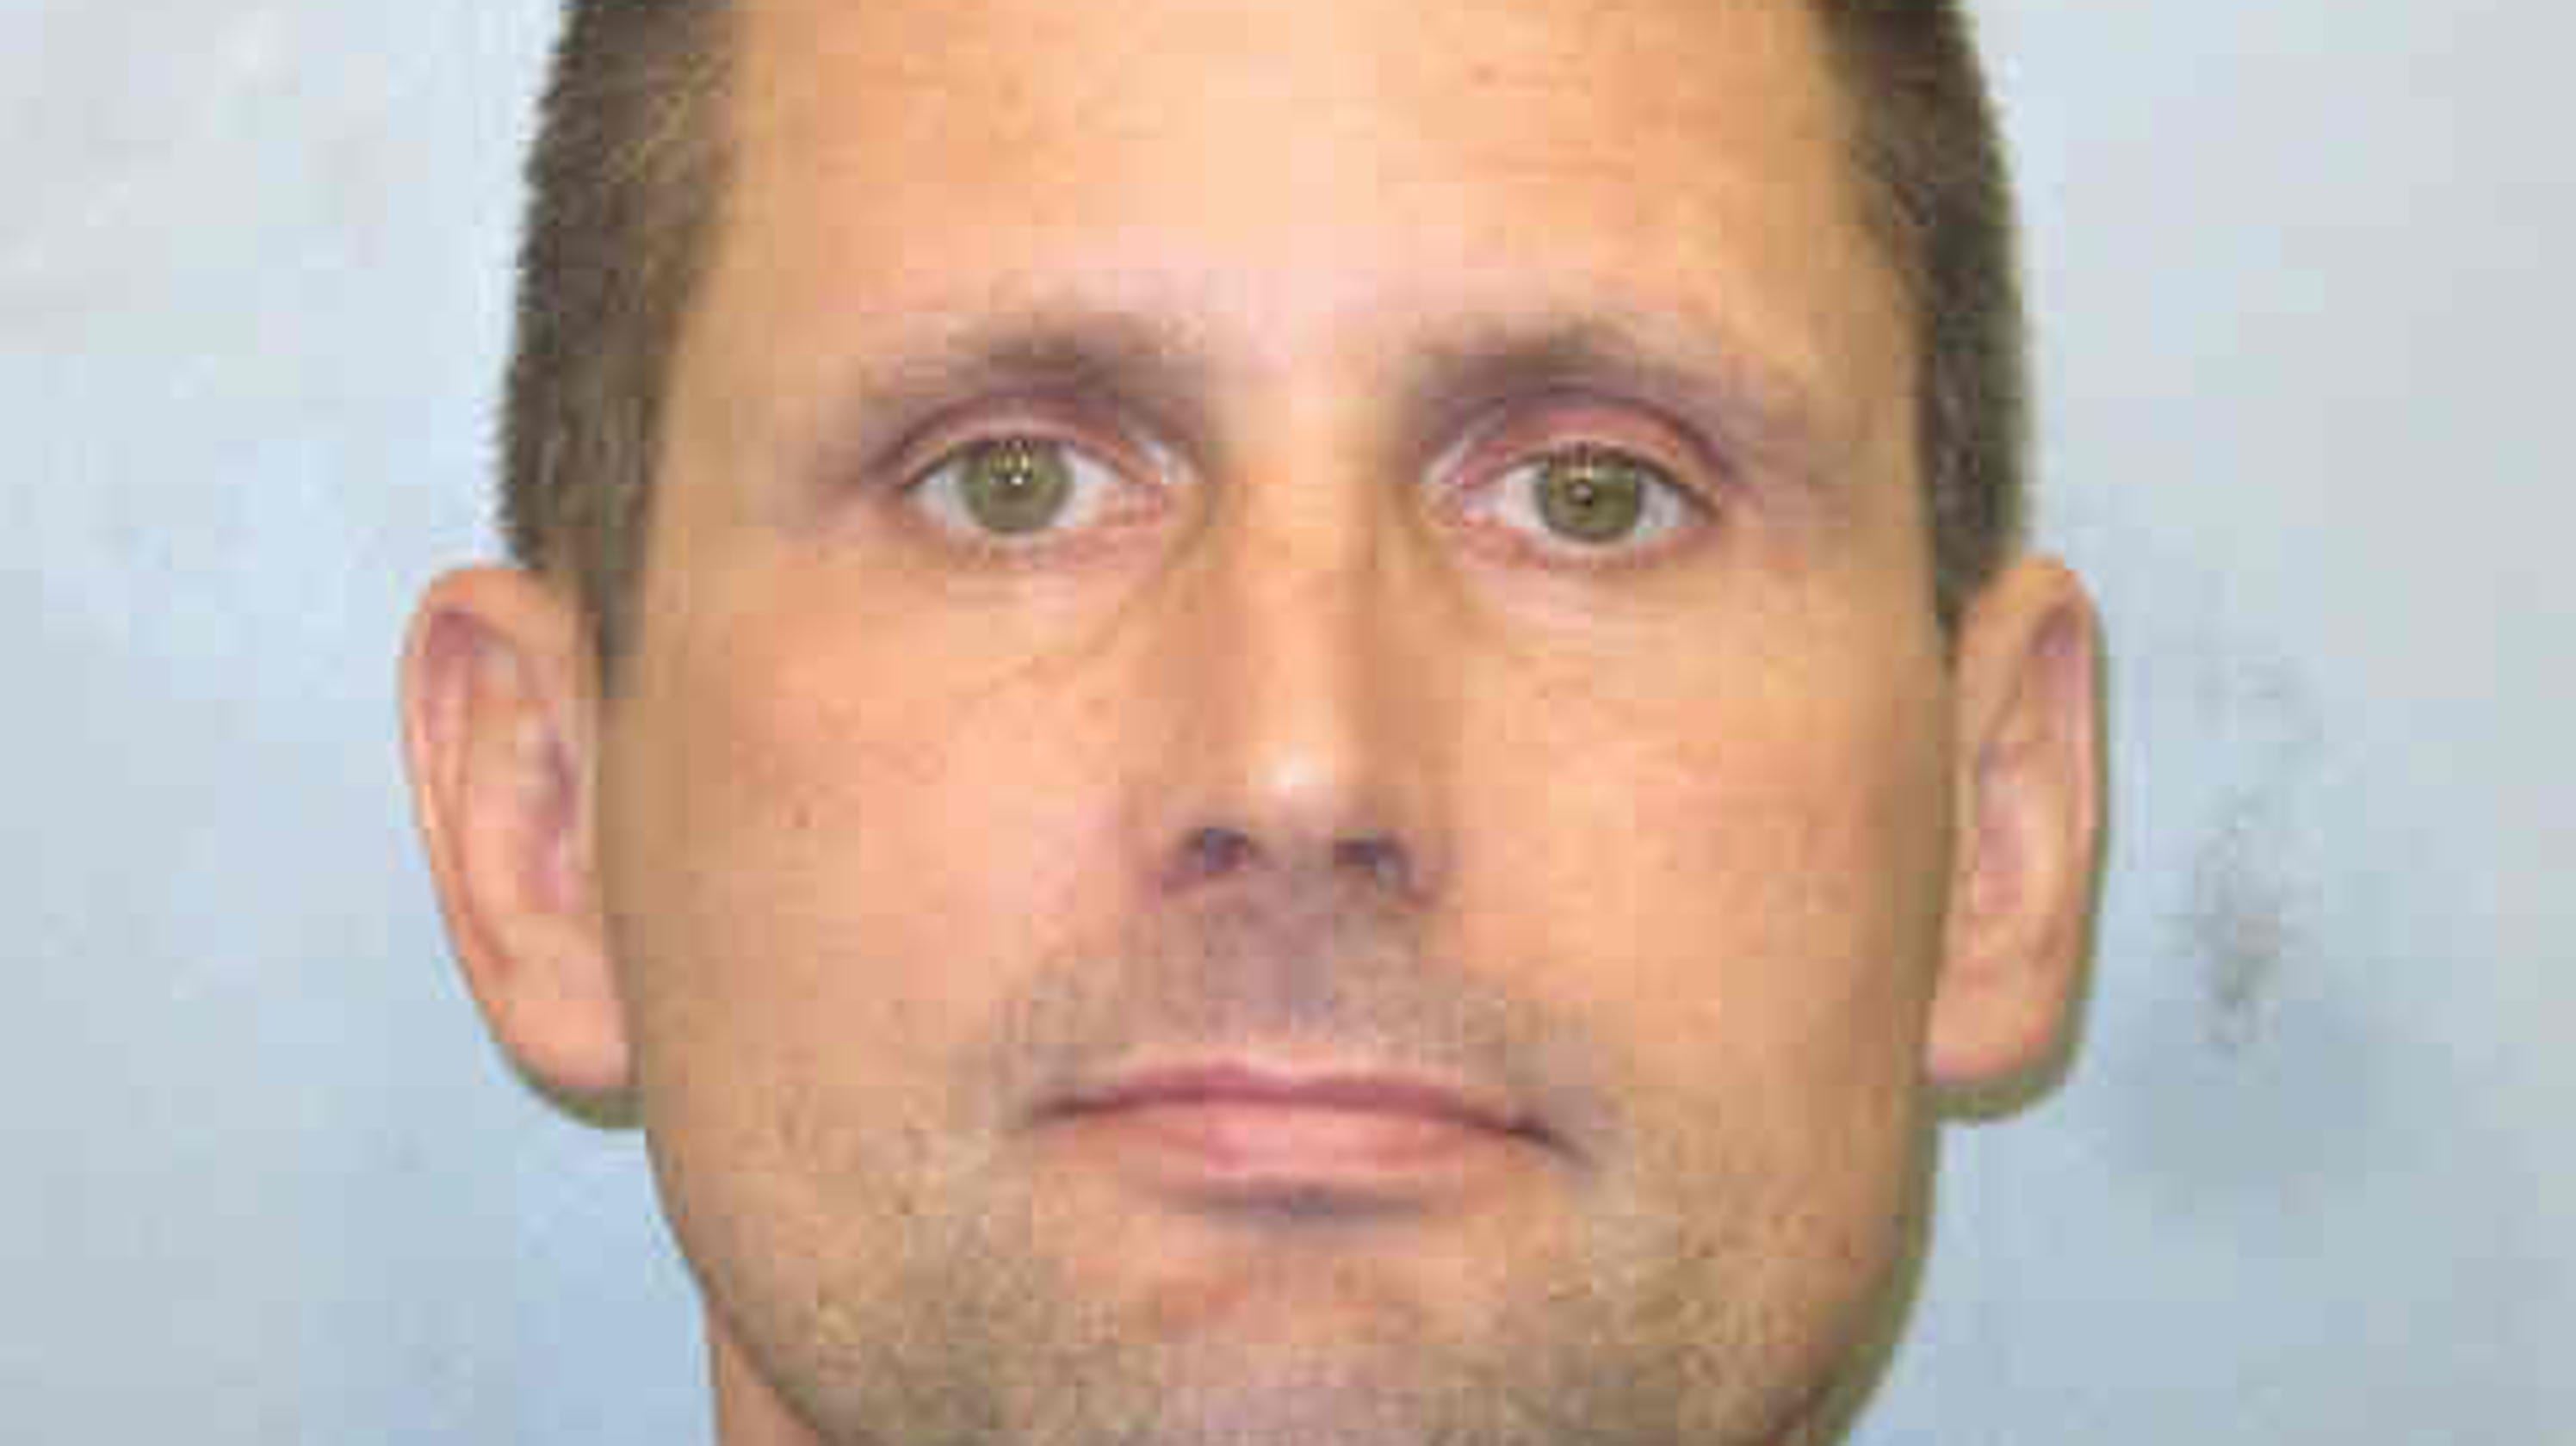 Iowa crime: Man who smuggled meth-laced papers into jail